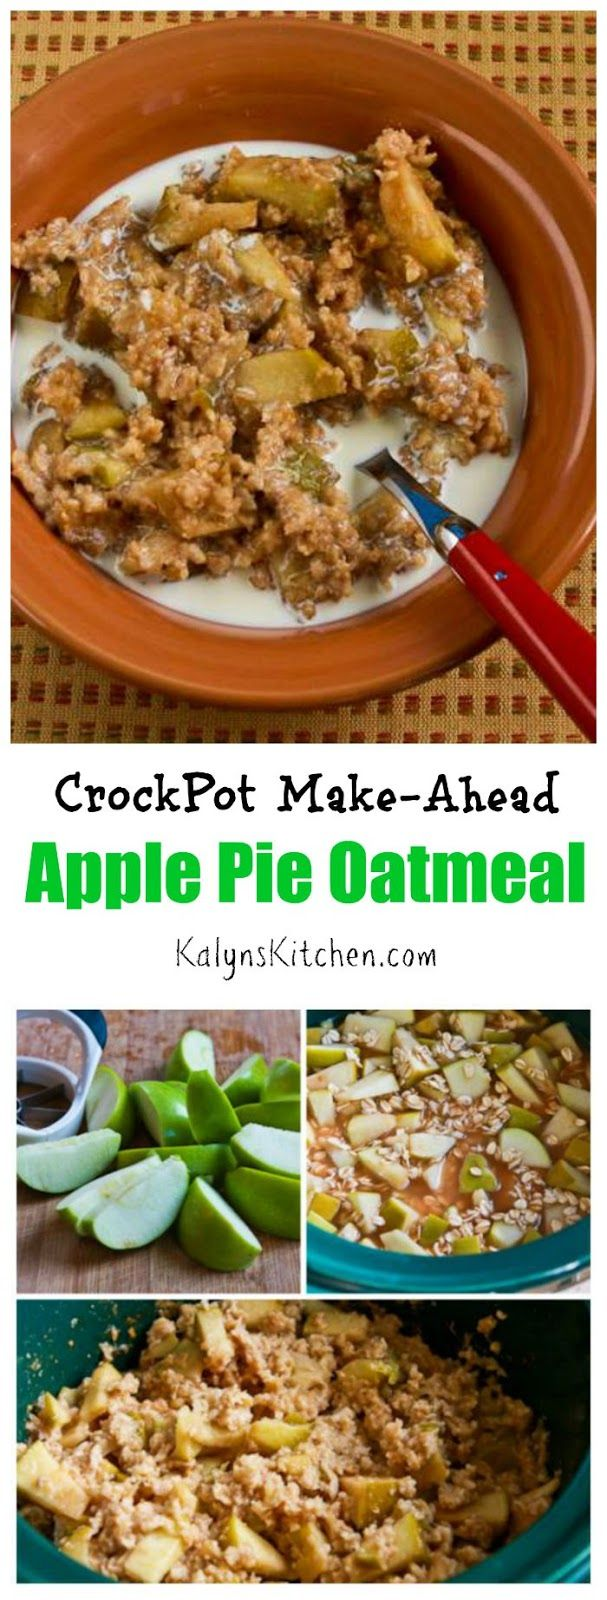 Easy and delicious CrockPot Make-Ahead Apple Pie Oatmeal has all the flavors of apple pie in oatmeal that you make at night and re-heat in the microwave or in a pan. If you like apple pie, you'll love these flavors in oatmeal. [from KalynsKitchen.com]